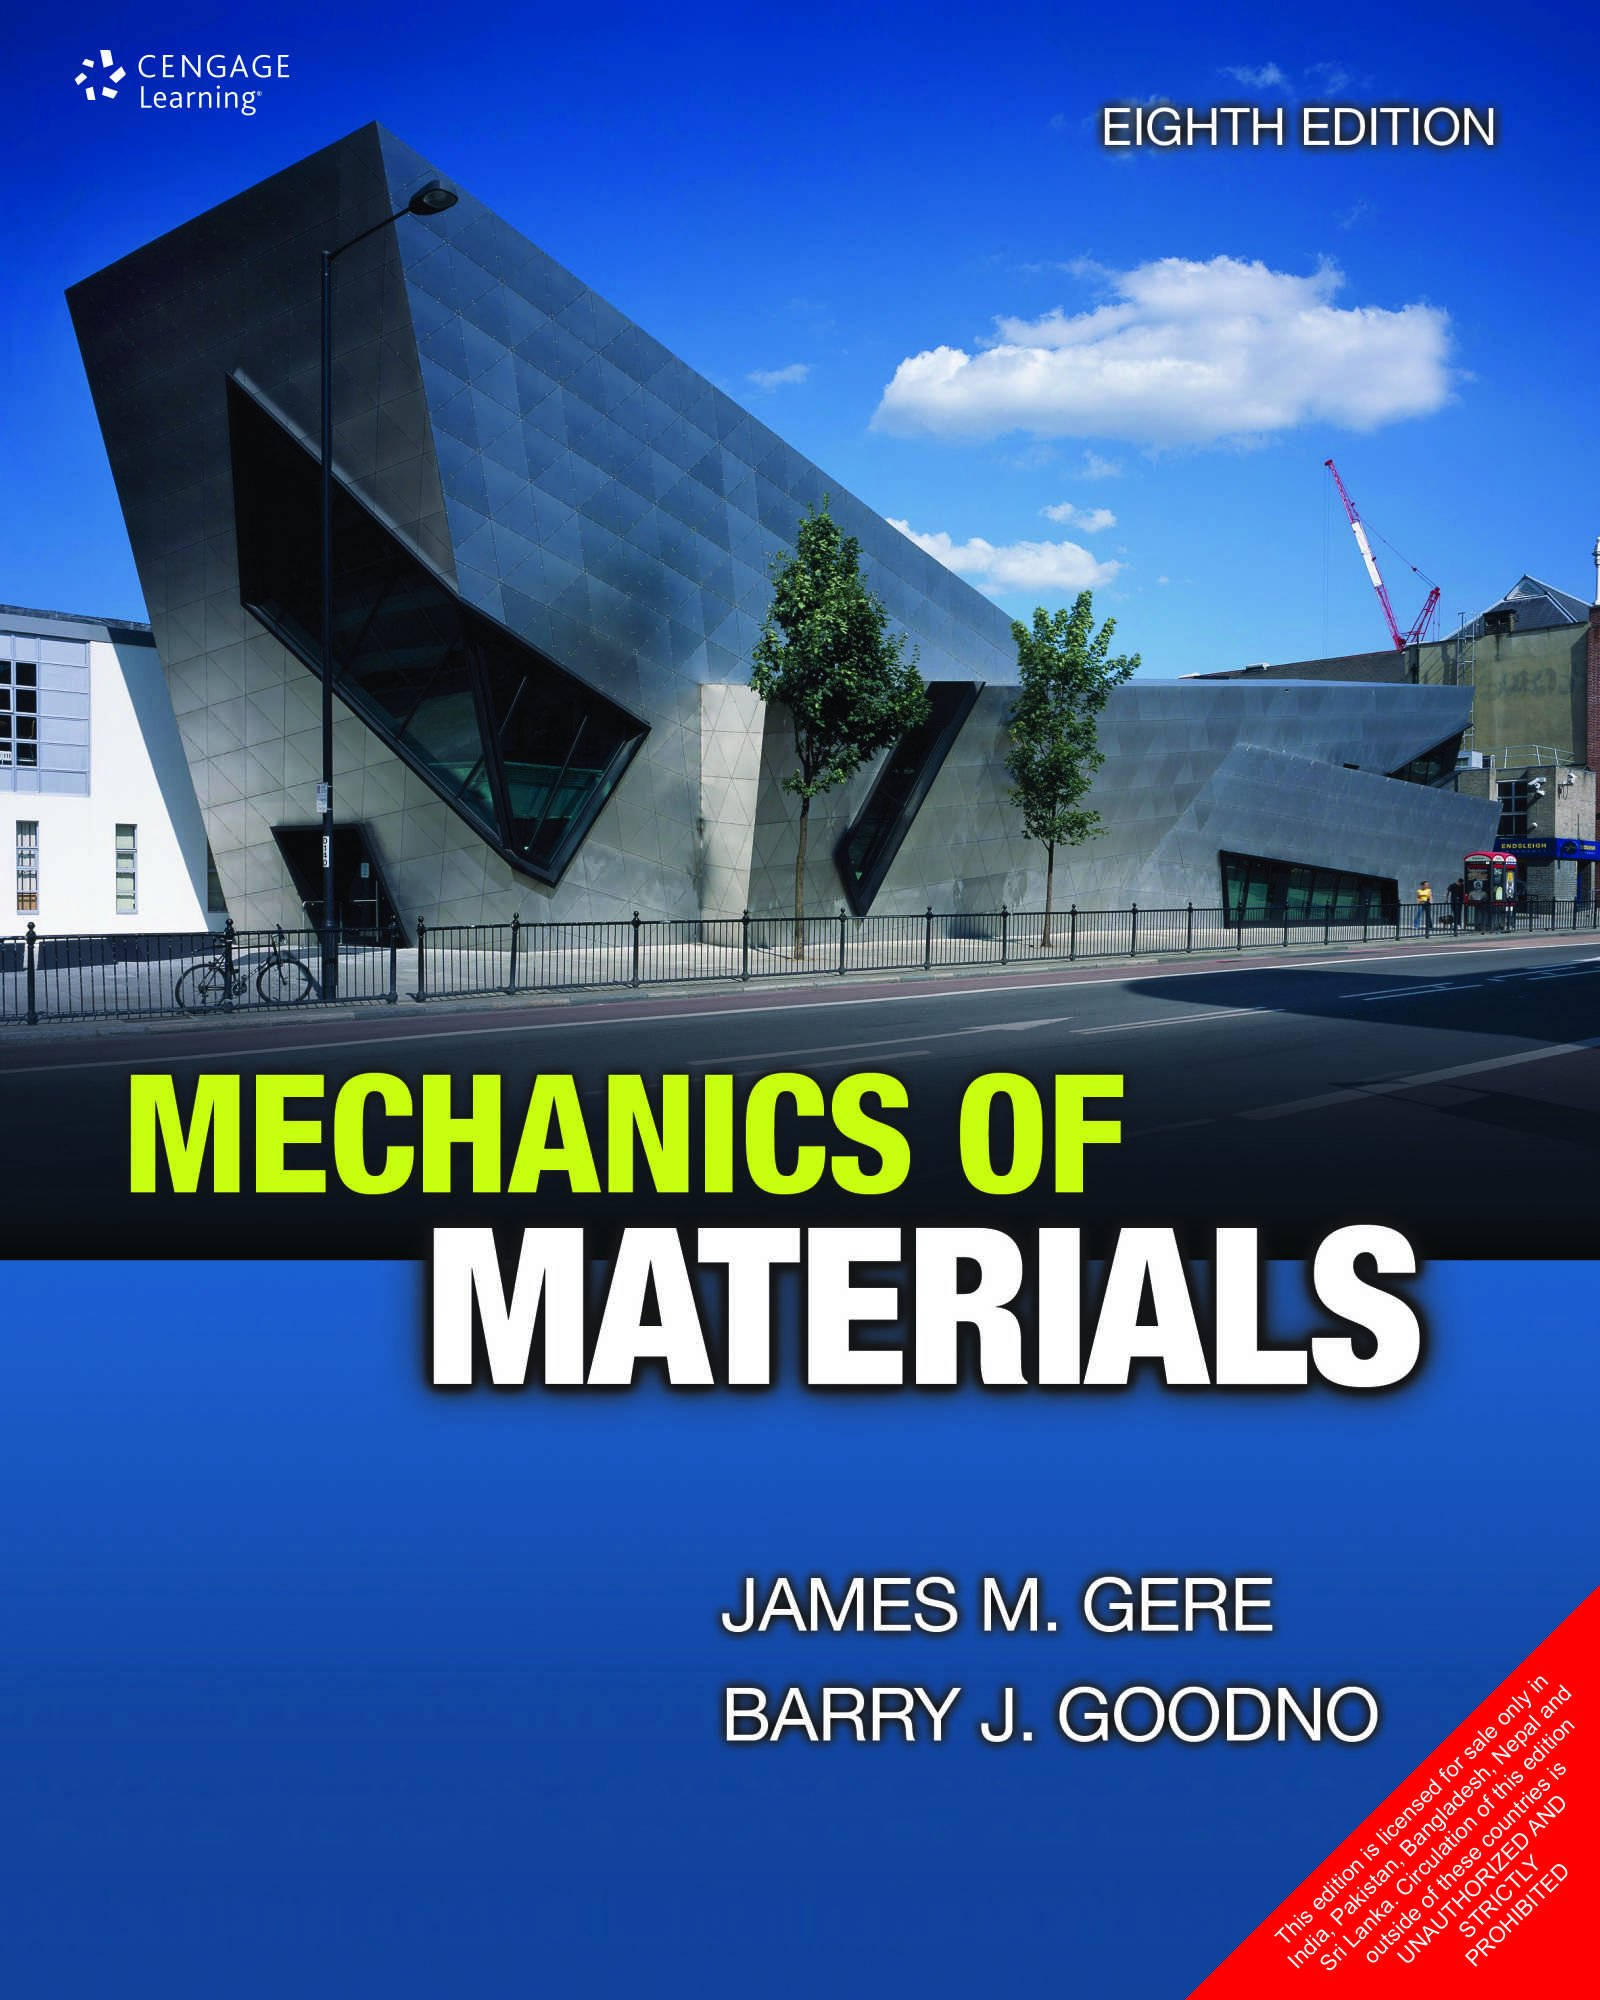 MECHANICS OF MATERIALS, 8TH EDITION